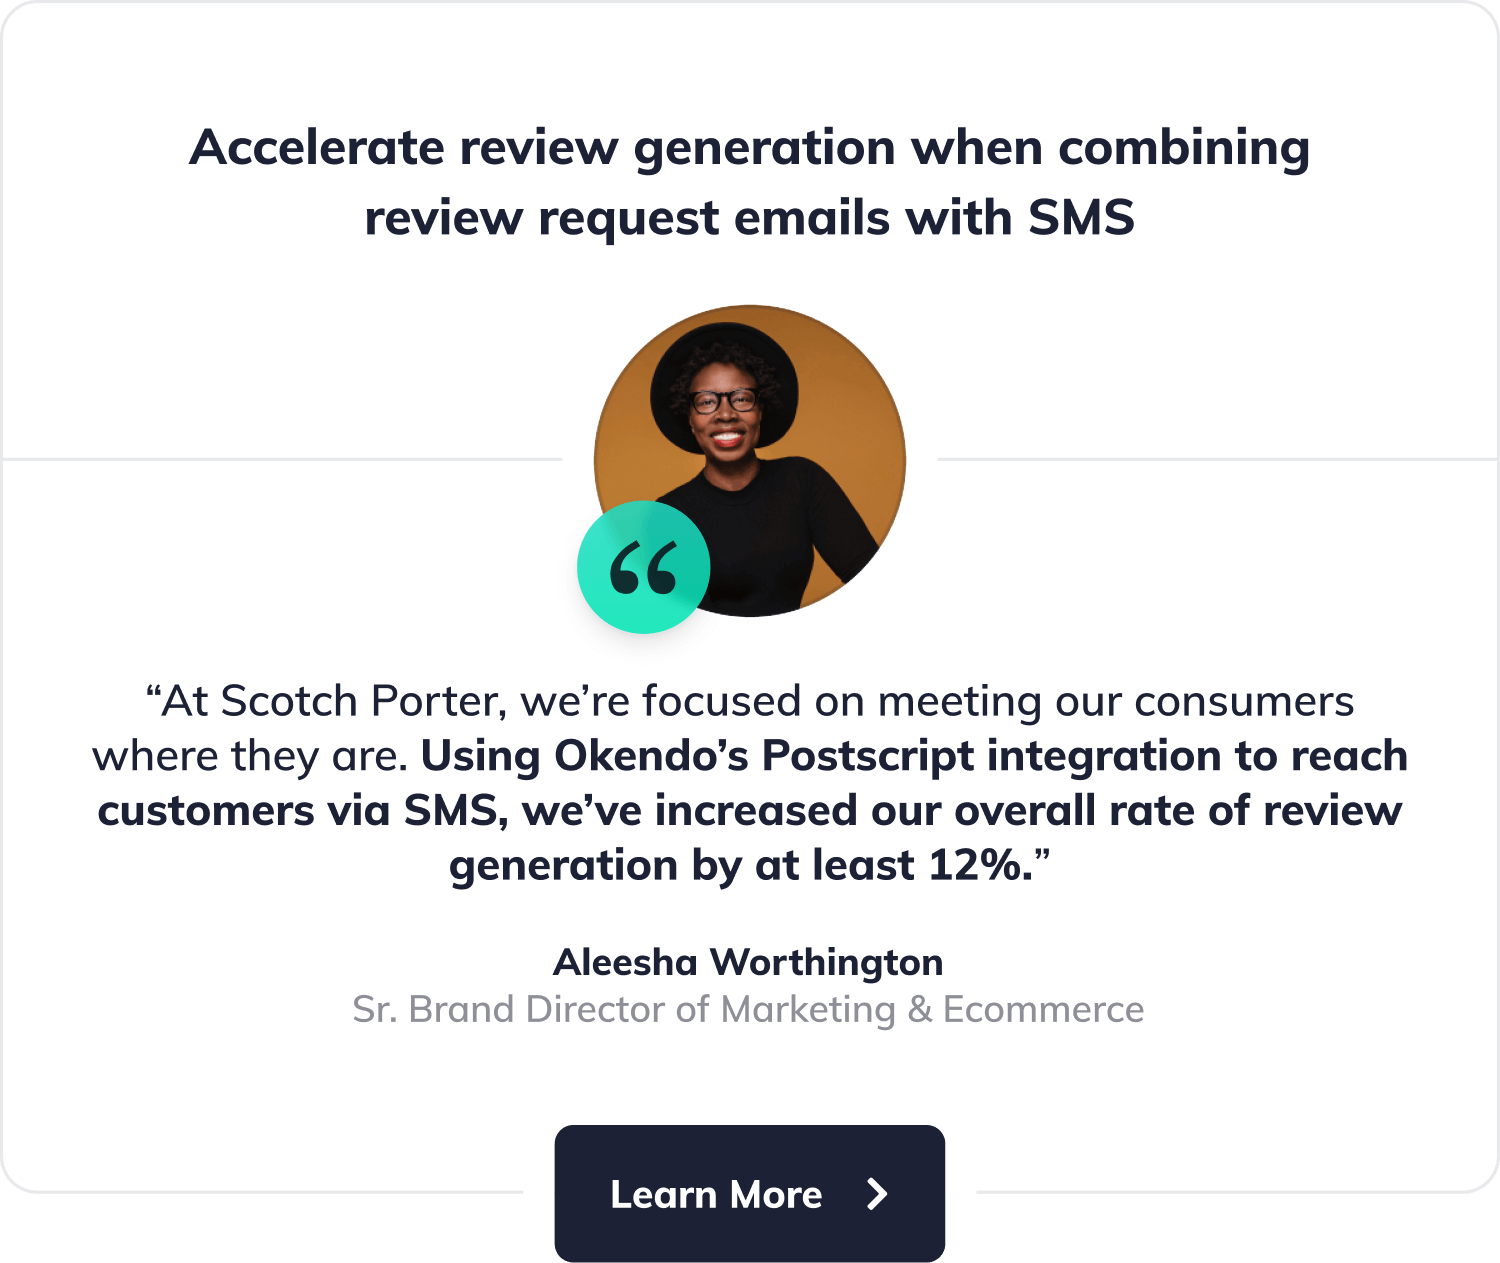 "Accelerate review generation when combining review request emails with SMS. ""At Scotch Porter, we're focused on meeting our consumers where they are. Using Okendo's Postscript integration to reach customers via SMS, we've increased our overall rate of review generation by at least 12%"